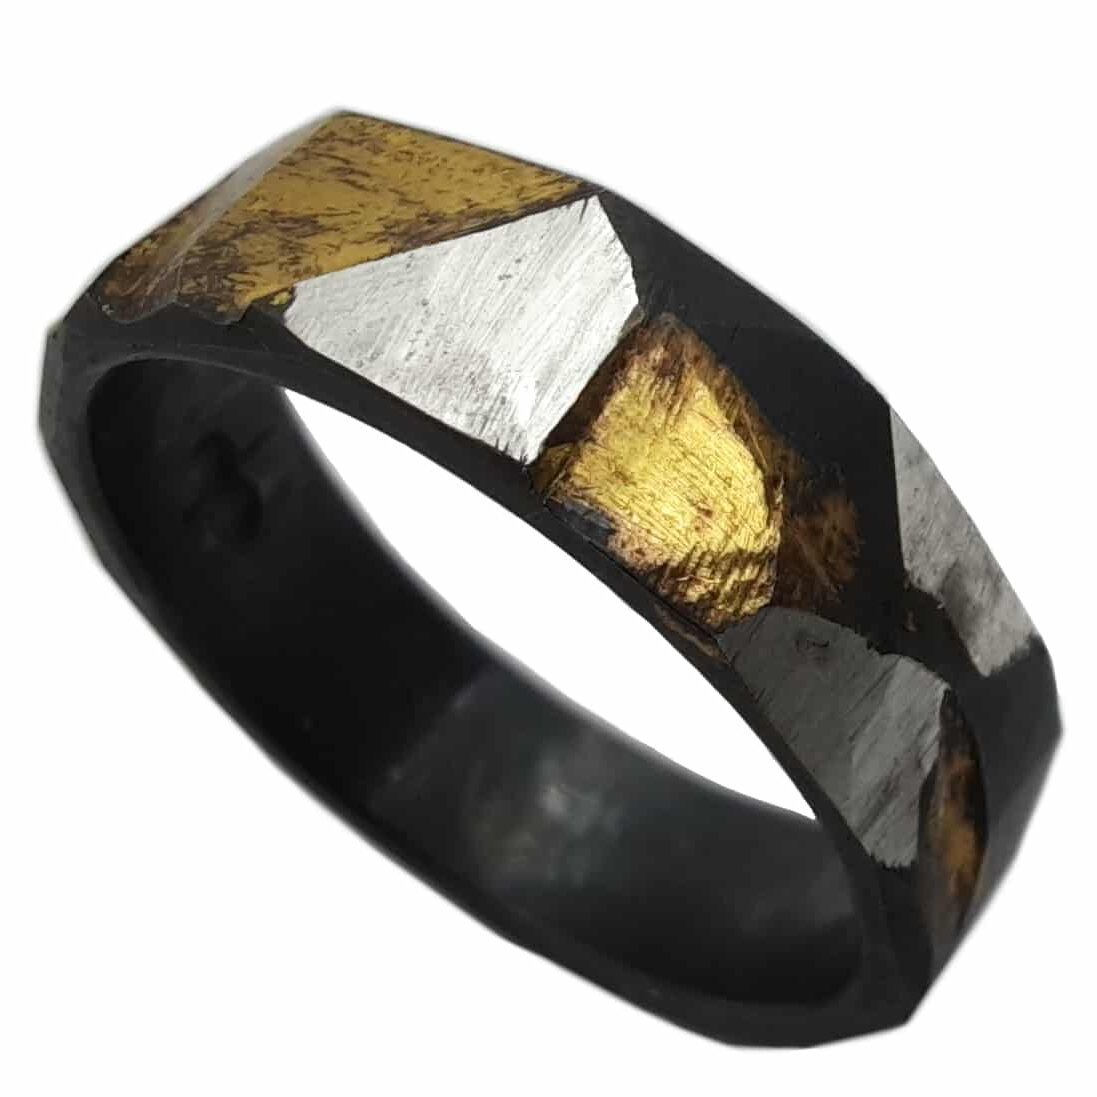 Triadic Ring, Sterling Silver With Keum-boo And Oxidised, Size V By R-Process